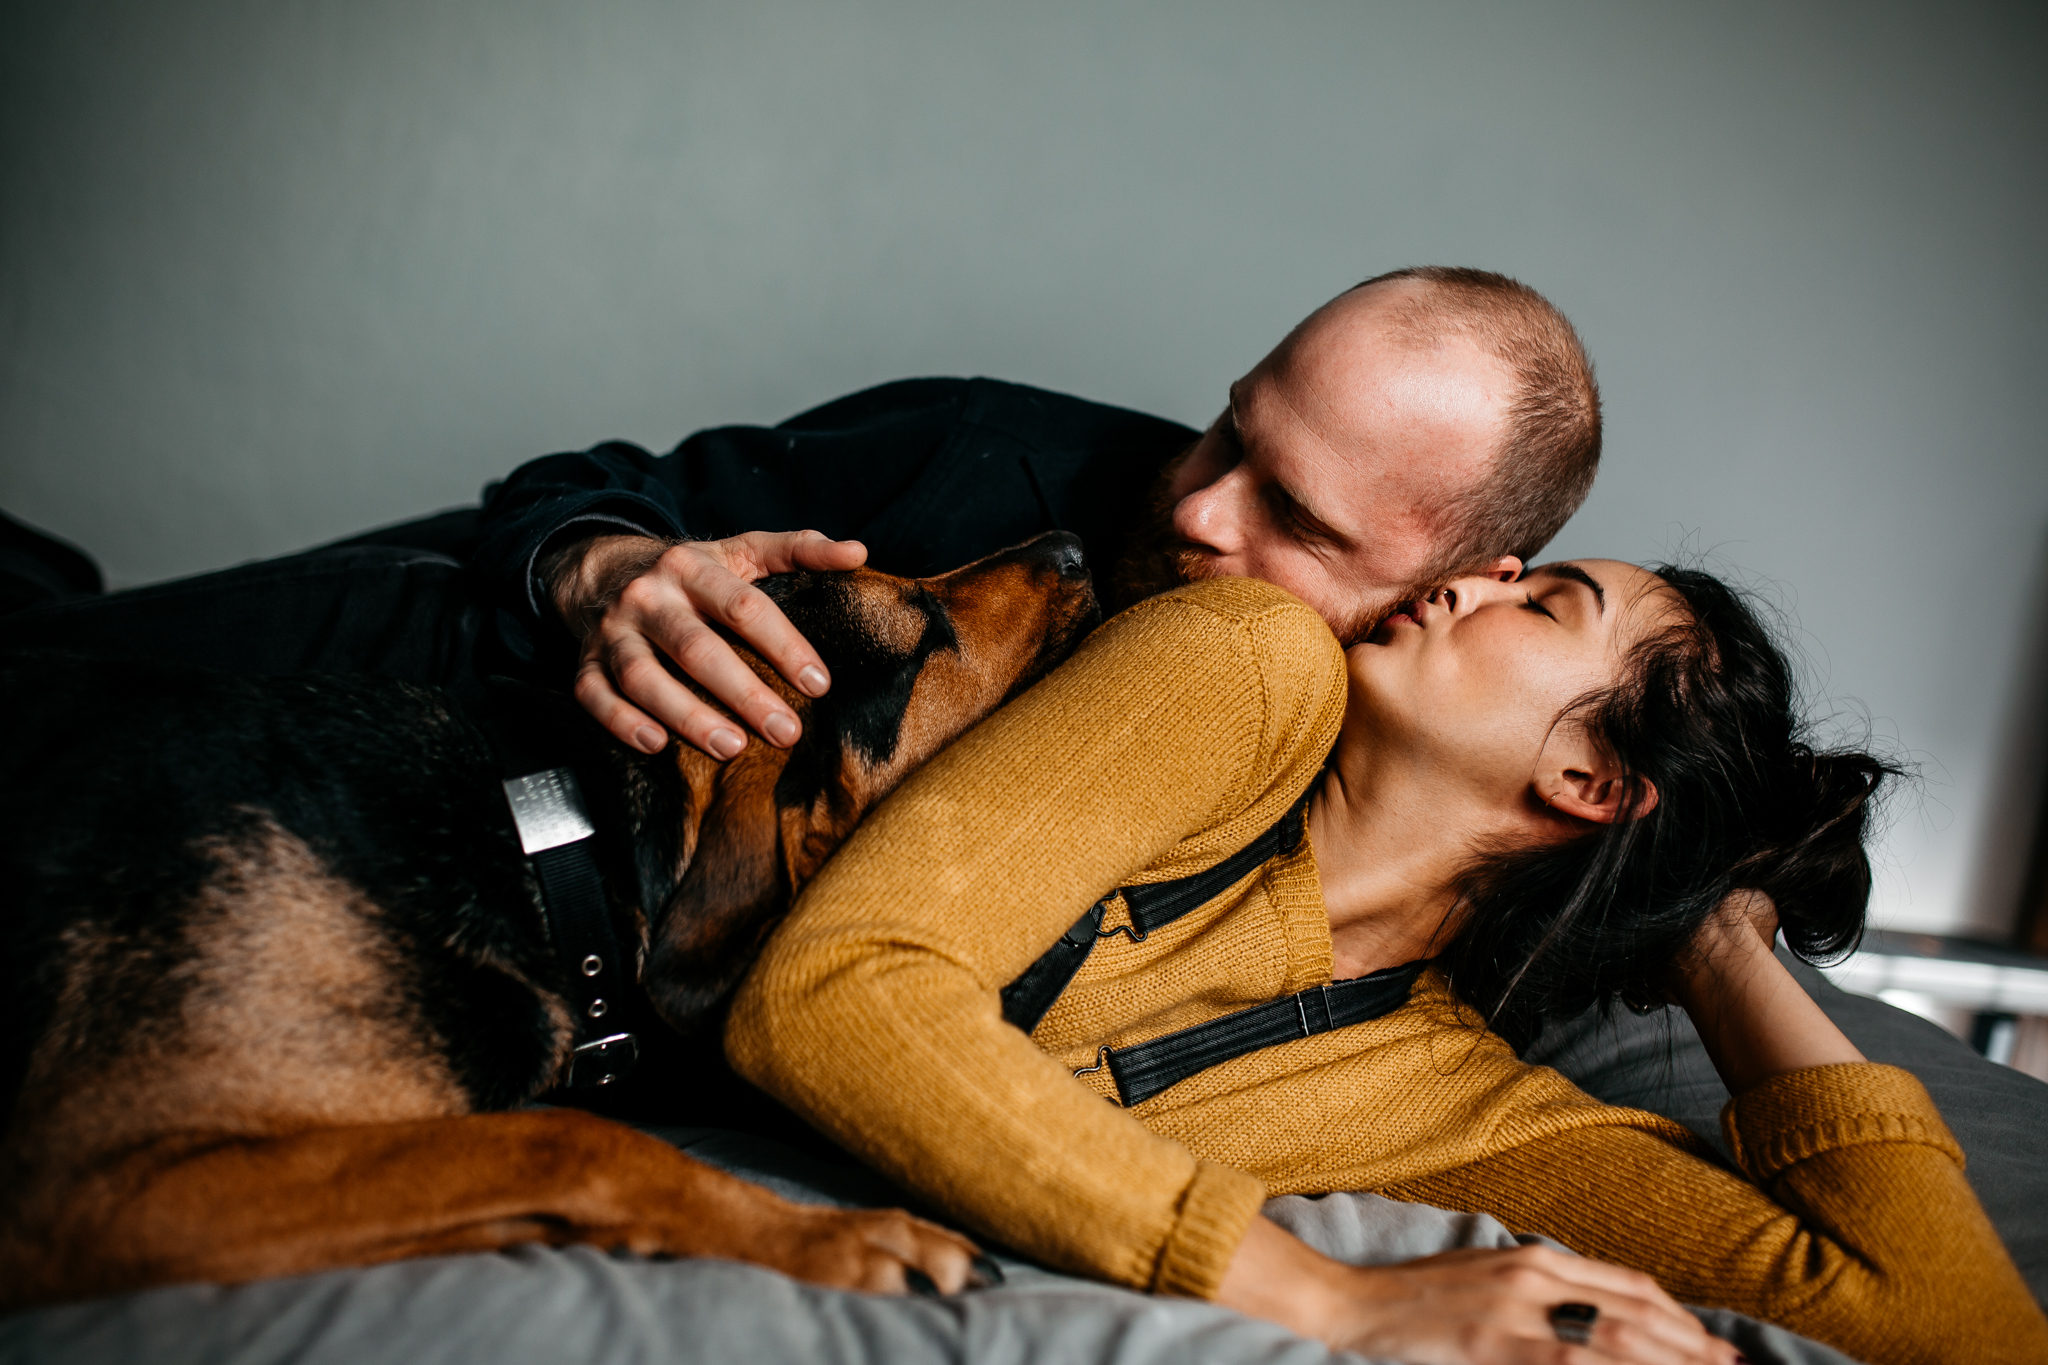 colorado documentary photographer - image of a couple and their hound dog laying in bed together